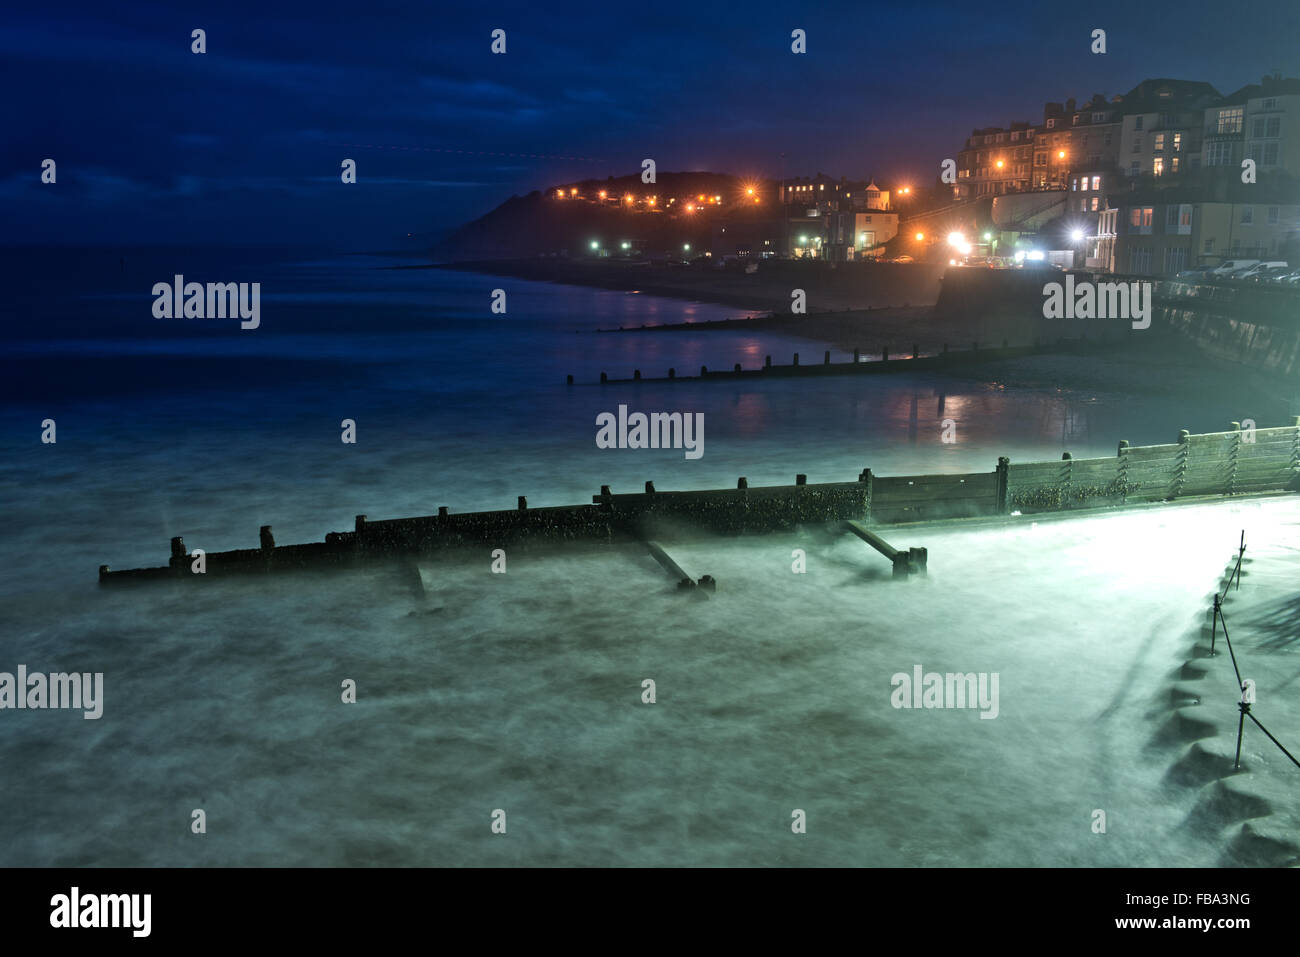 View at night of Cromer, Norfolk, UK. Taken from the Pier. - Stock Image